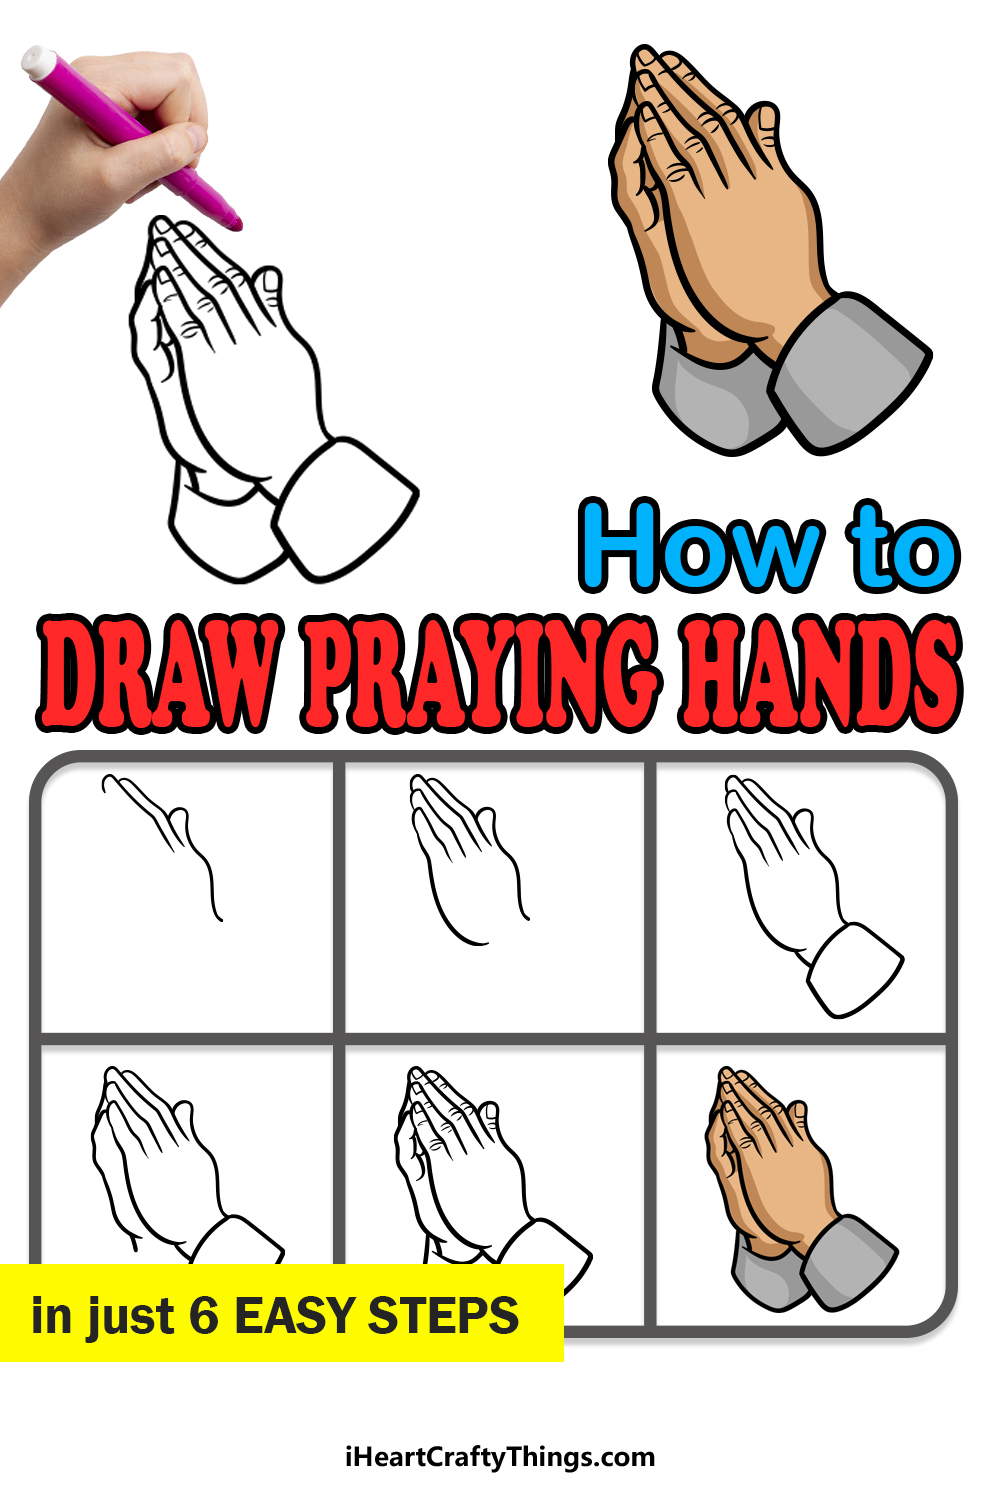 how to draw praying hands in 6 easy steps